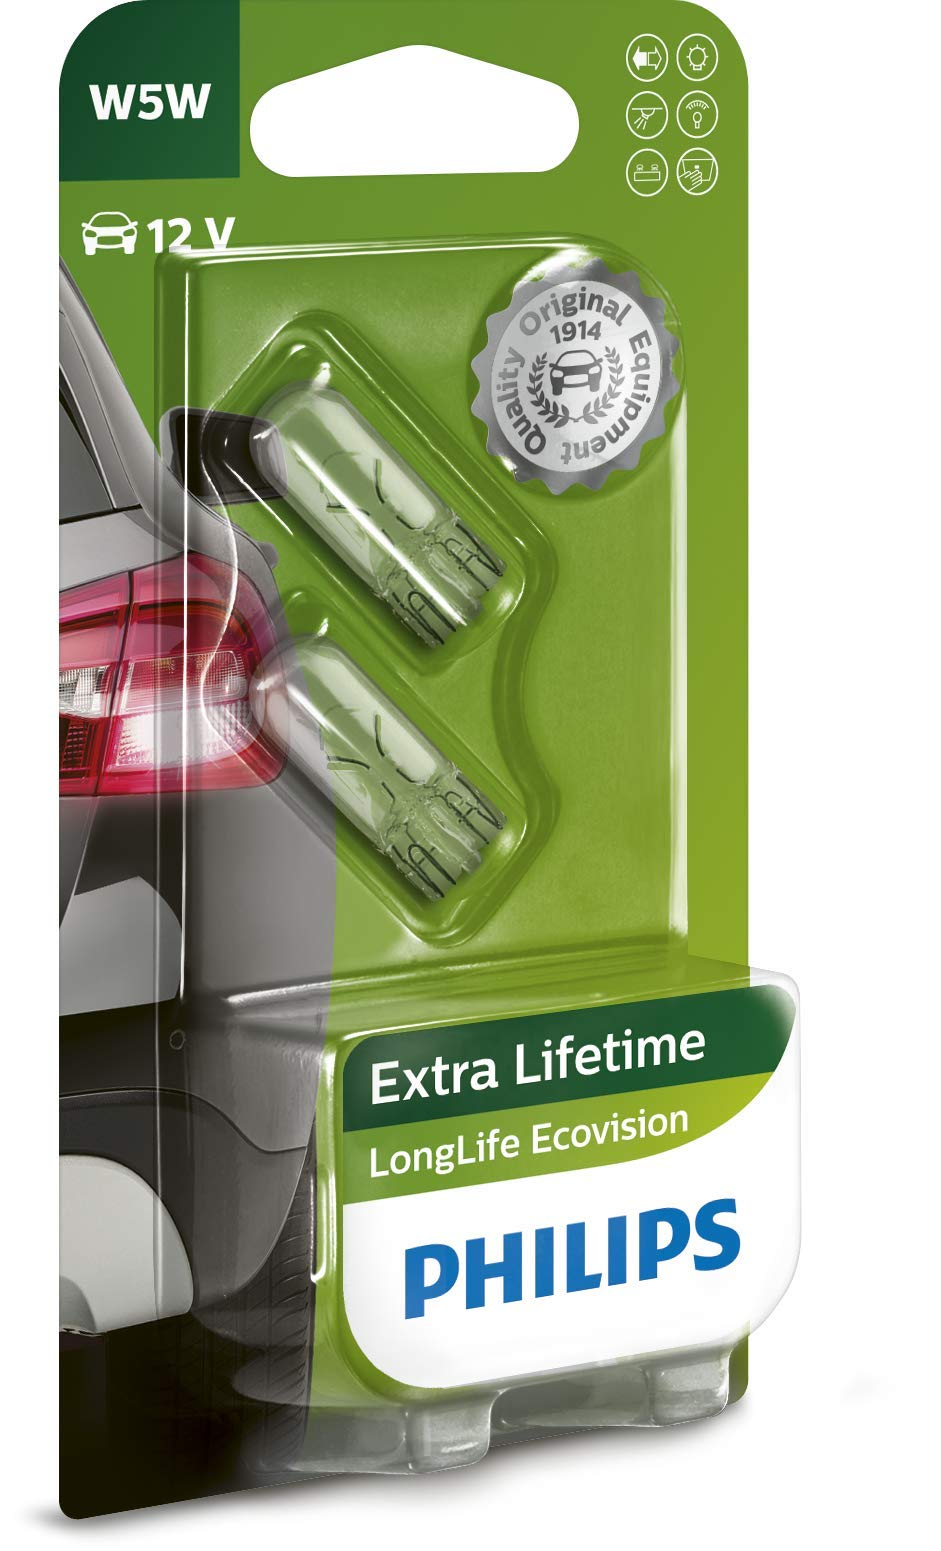 Philips 12961LLECOB2 LongLife EcoVision W5W Signallampe 12961LLECOB2, 2er Blister von Philips automotive lighting